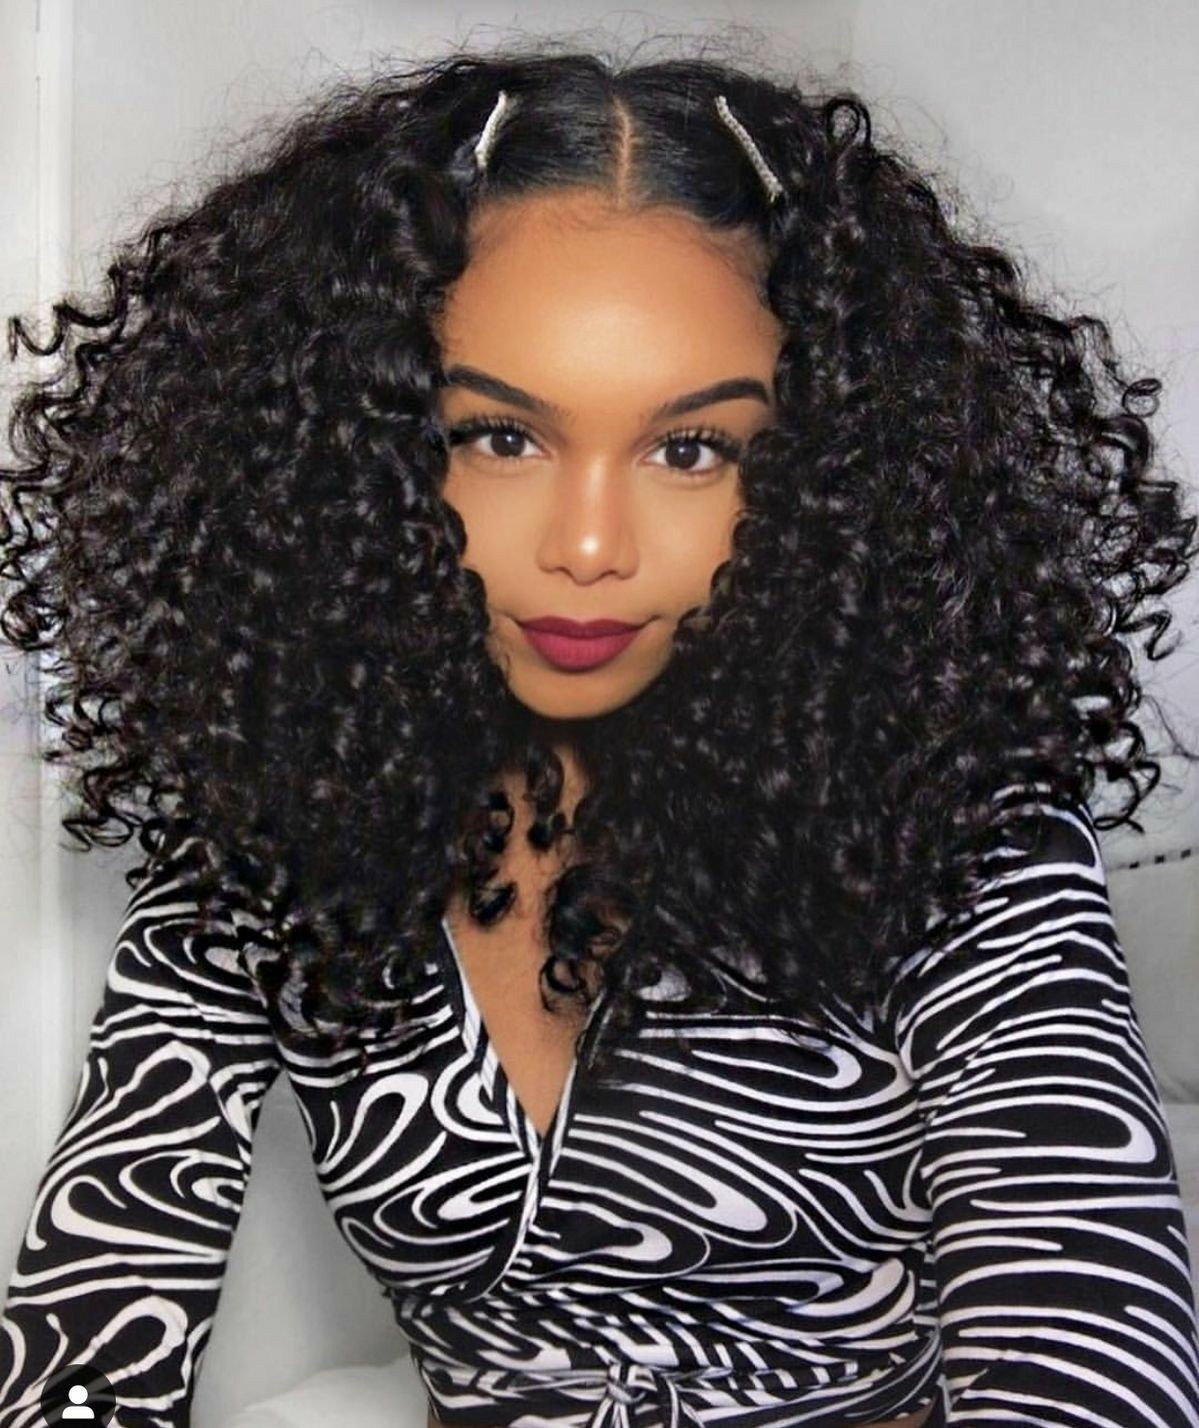 Curly Hairstyles For Prom Natural Curly Hairstyles Youtube Curly Hair Volume Curly Hairstyles Hai In 2020 Curly Hair Styles Natural Hair Styles Headband Hairstyles